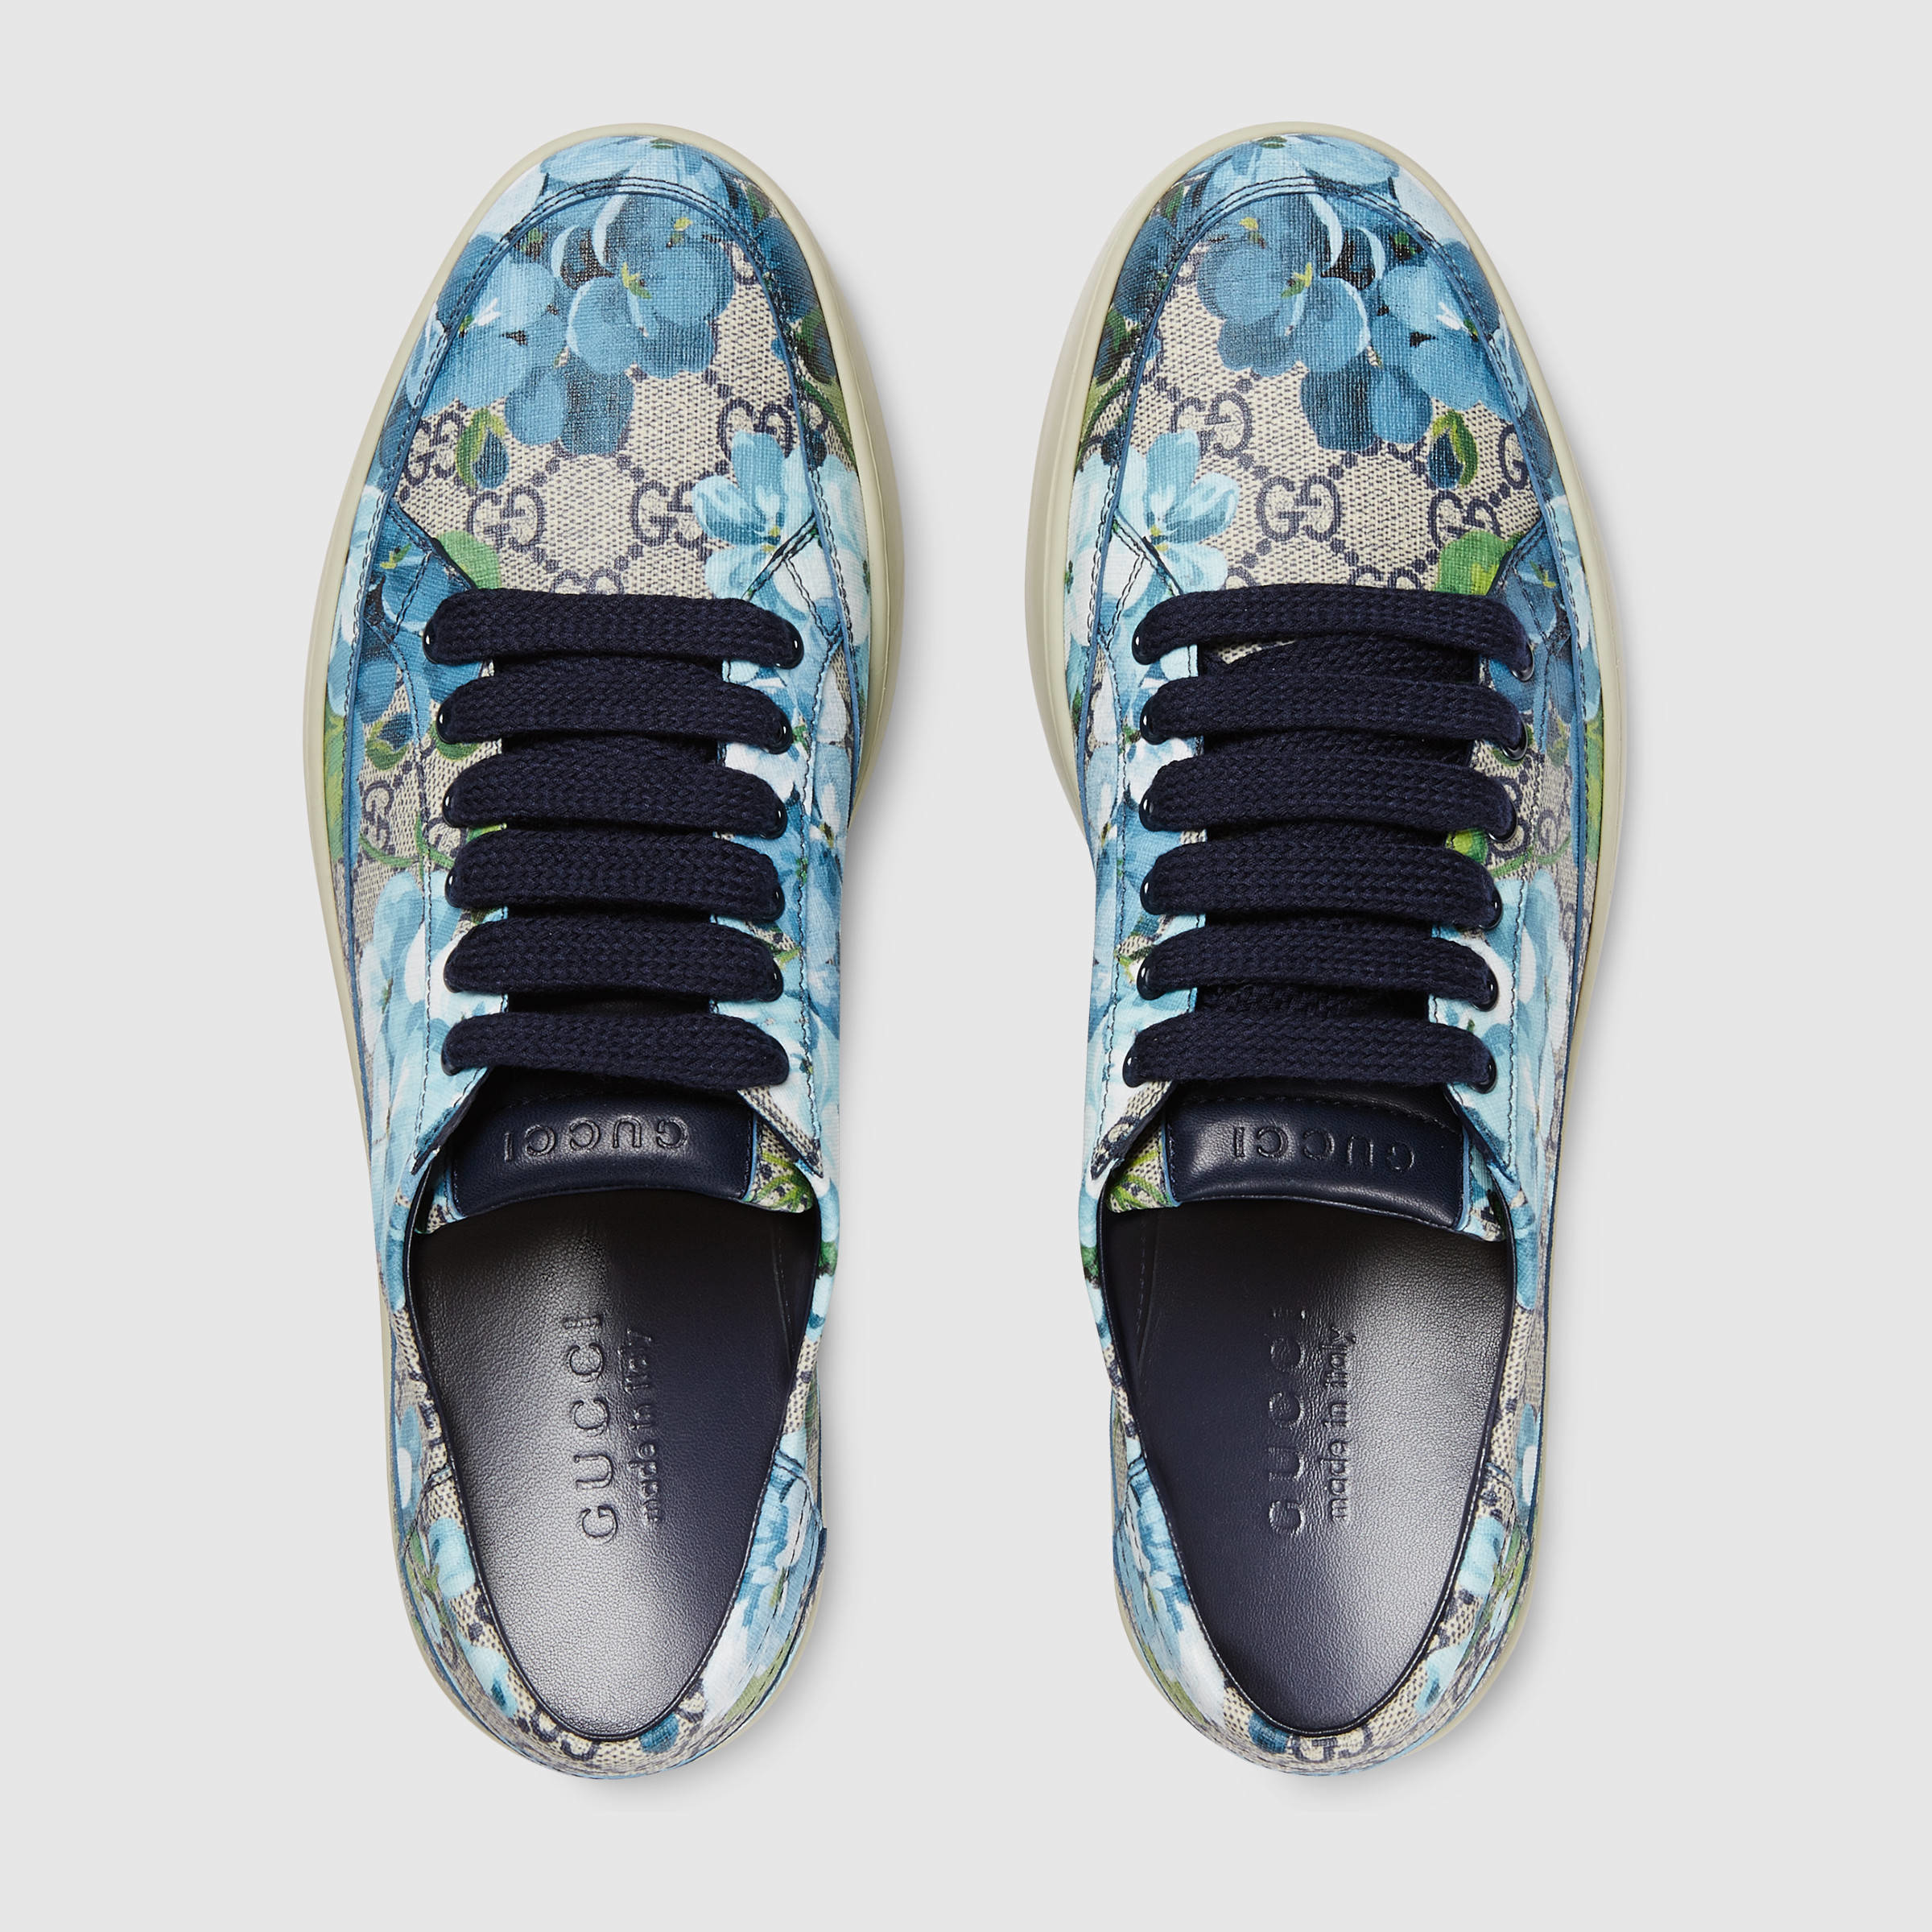 b1f8c0a40ea Gucci Gg Blooms Low-top Sneaker in Blue for Men - Lyst